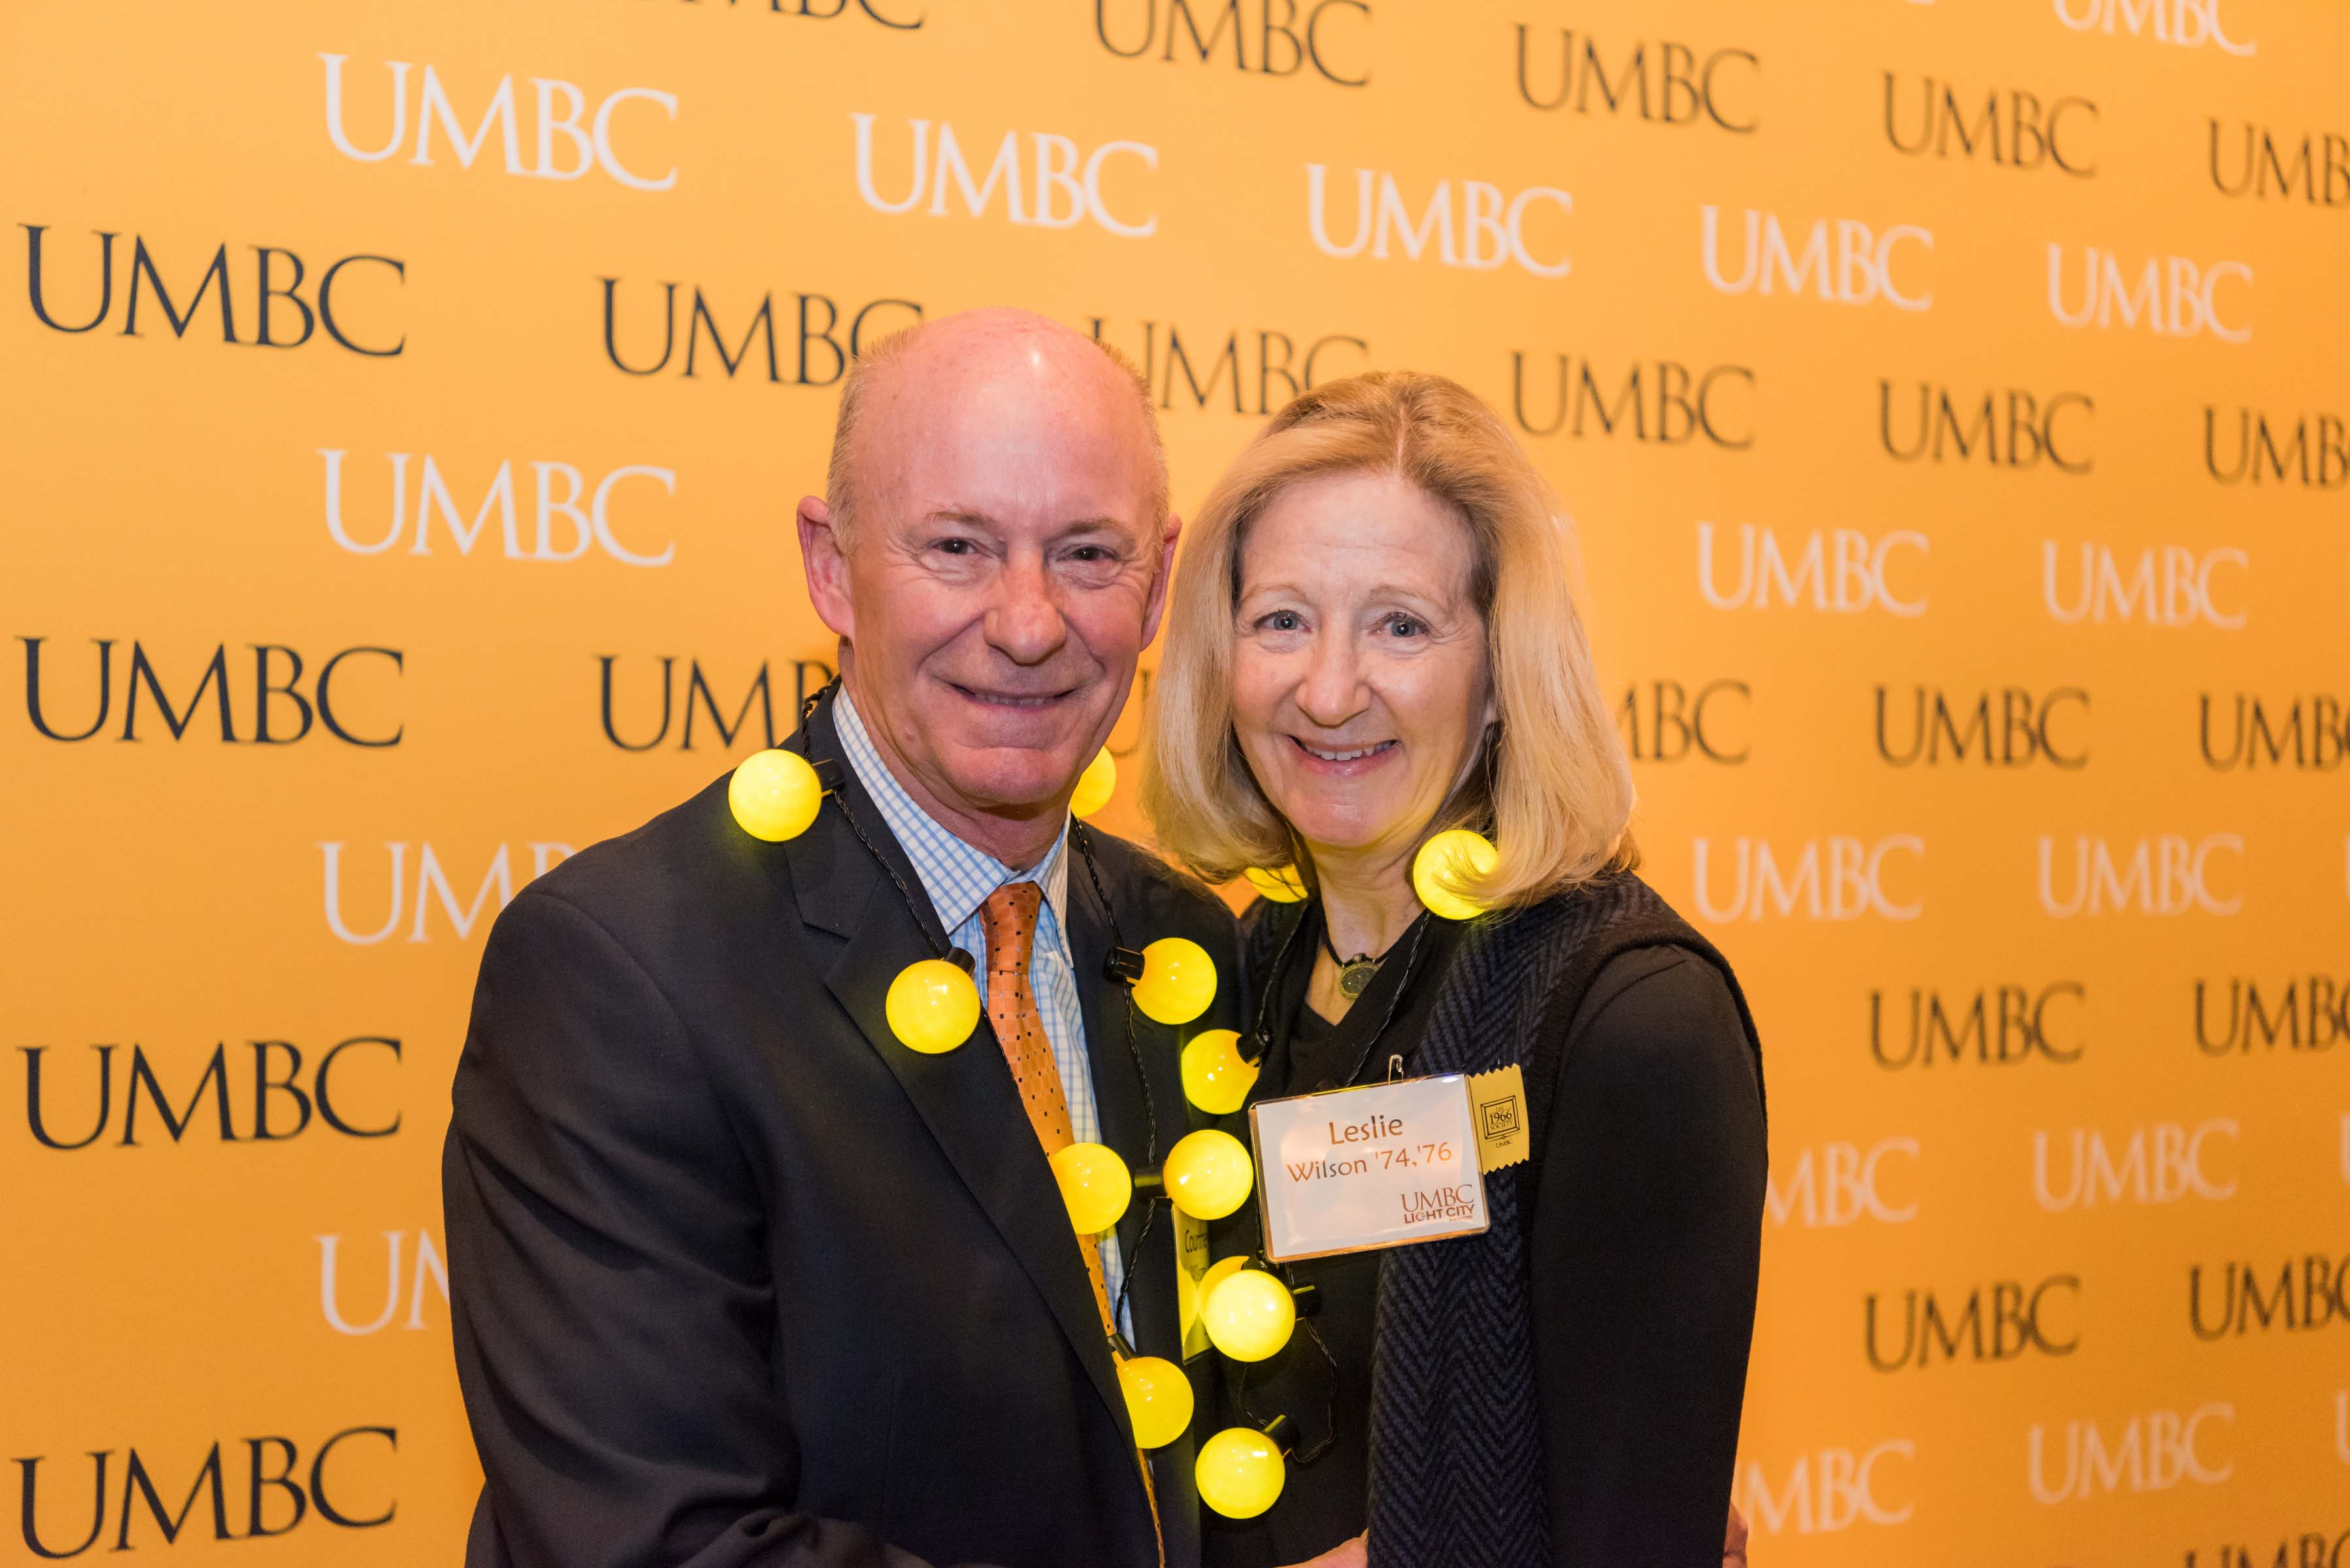 Leslie Wilson poses with man in front of UMBC wall